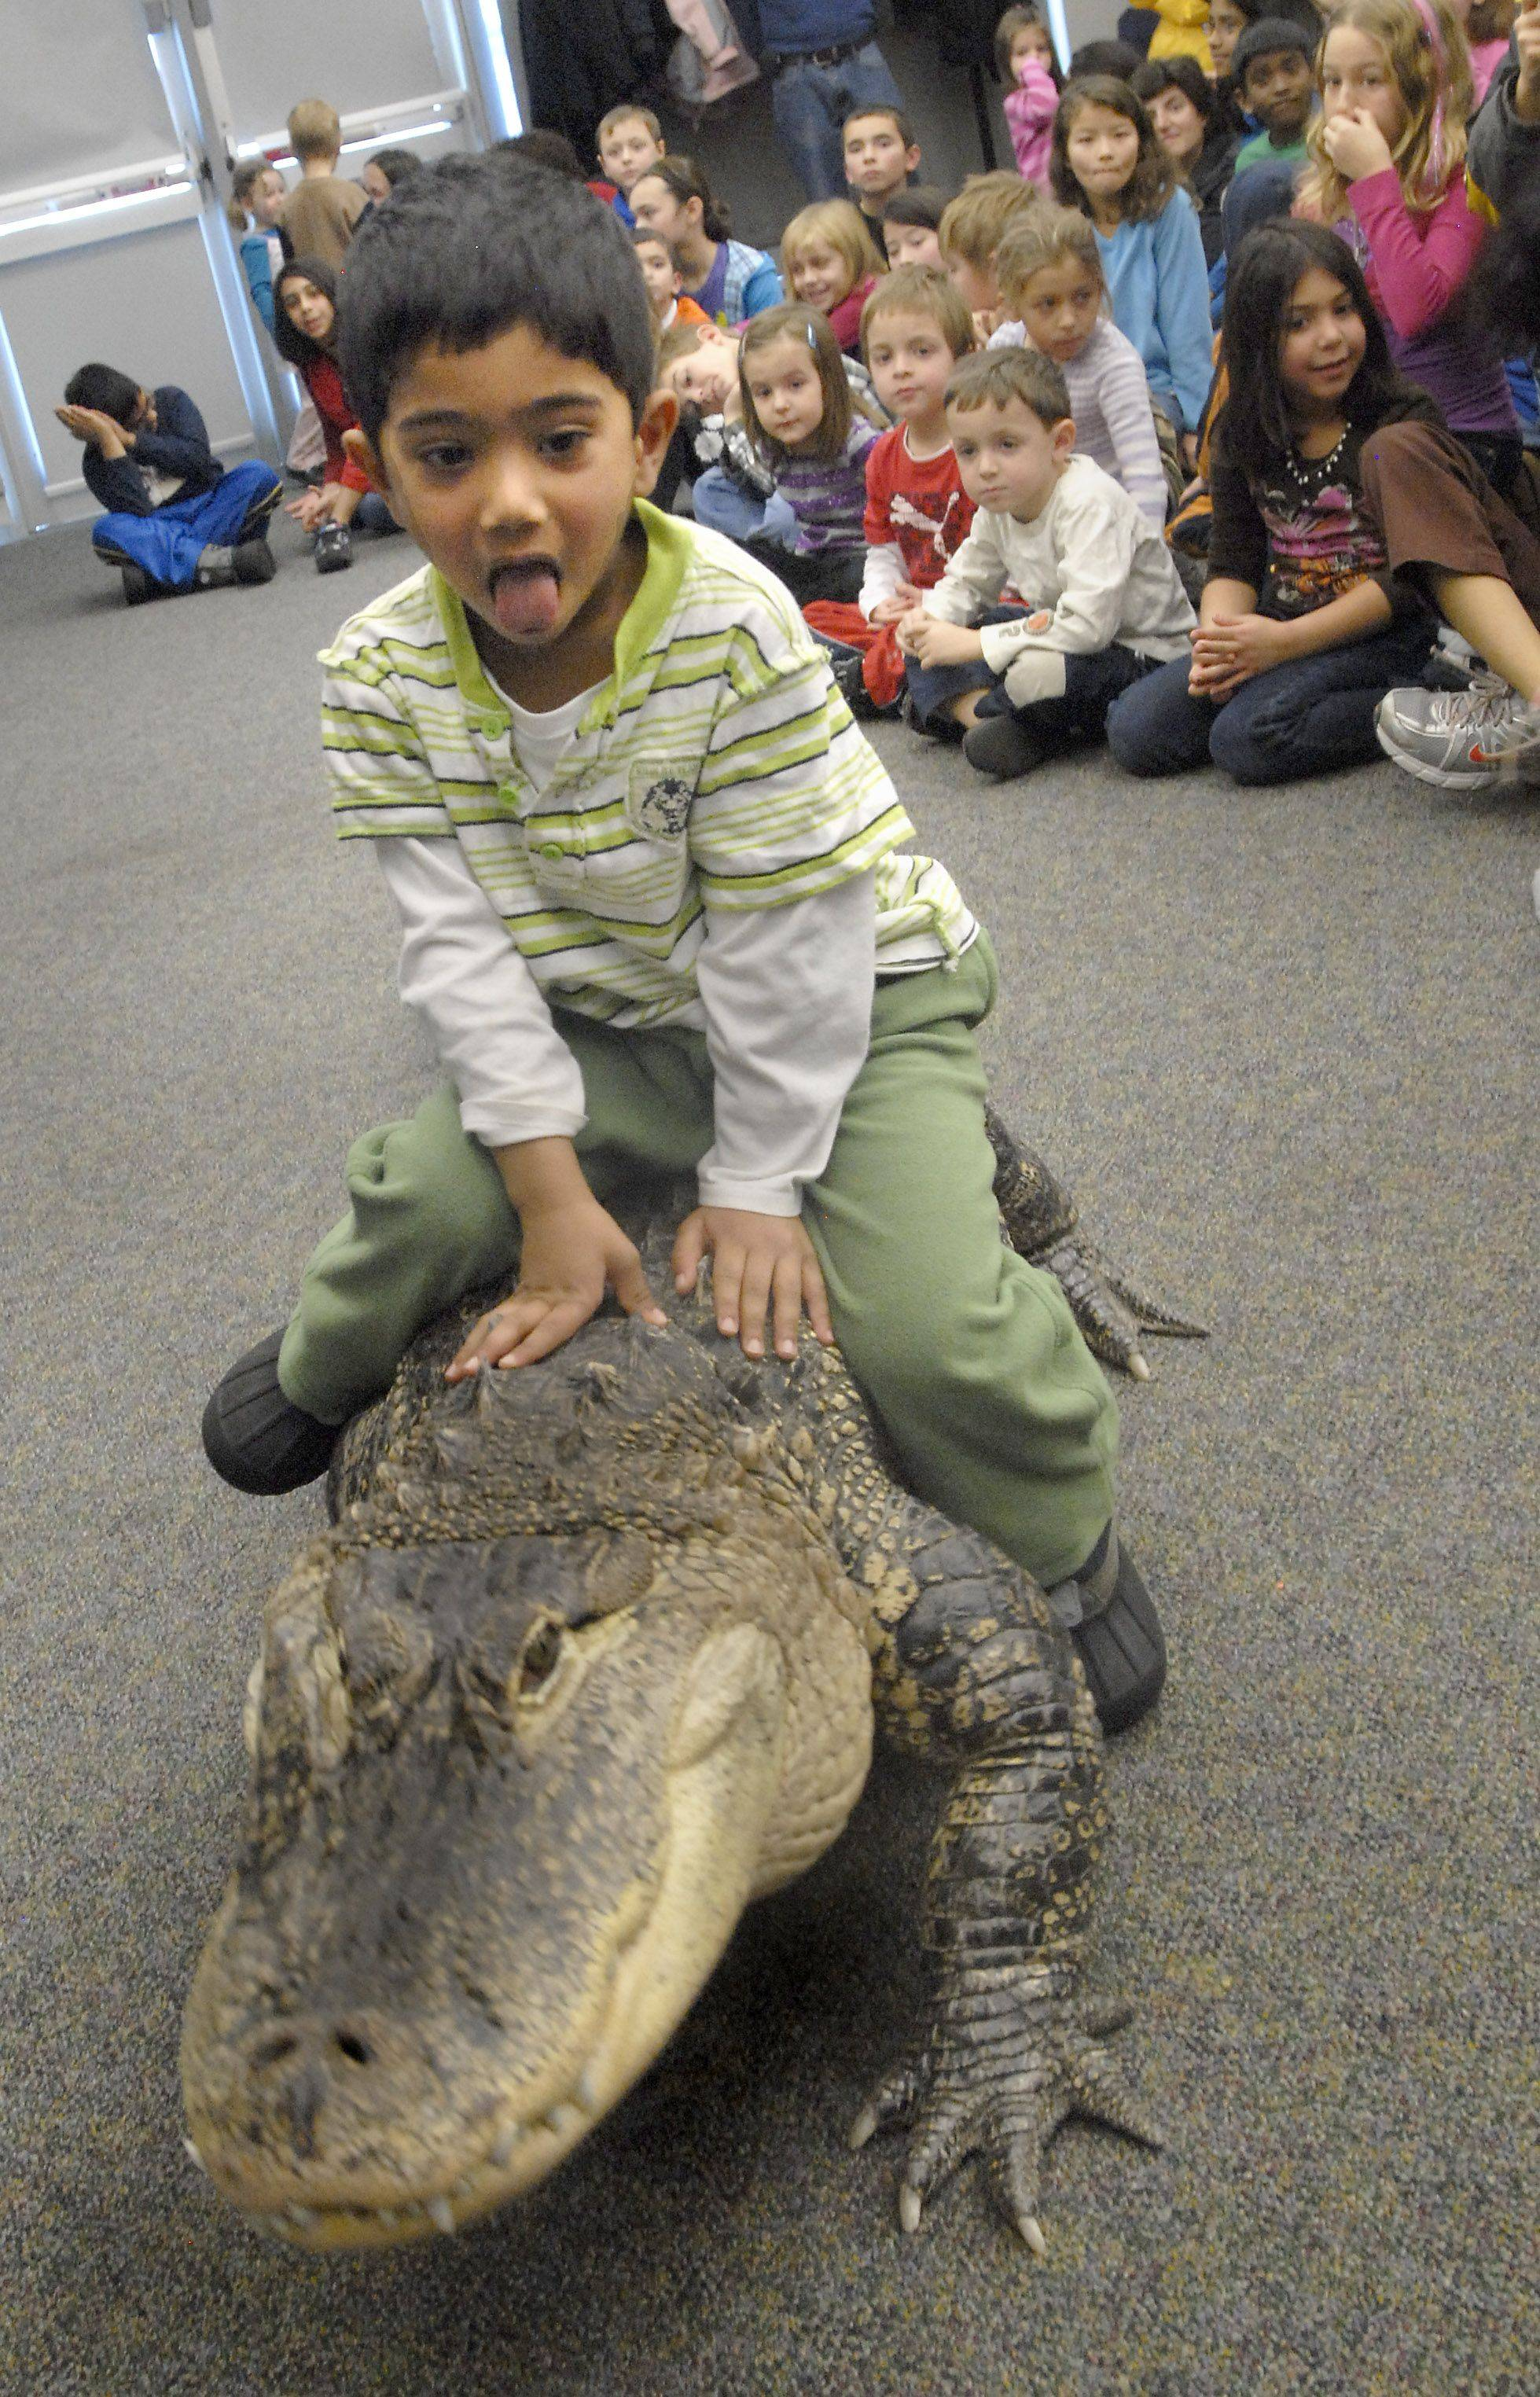 Caleb Samuel, 3, of Arlington Heights takes a ride Wednesday on Bubba, an 8-foot-long, 200-pound American alligator, at Indian Trails Public Library. Bubba has been trained by Jim Nesci with Cold Blooded Creatures.